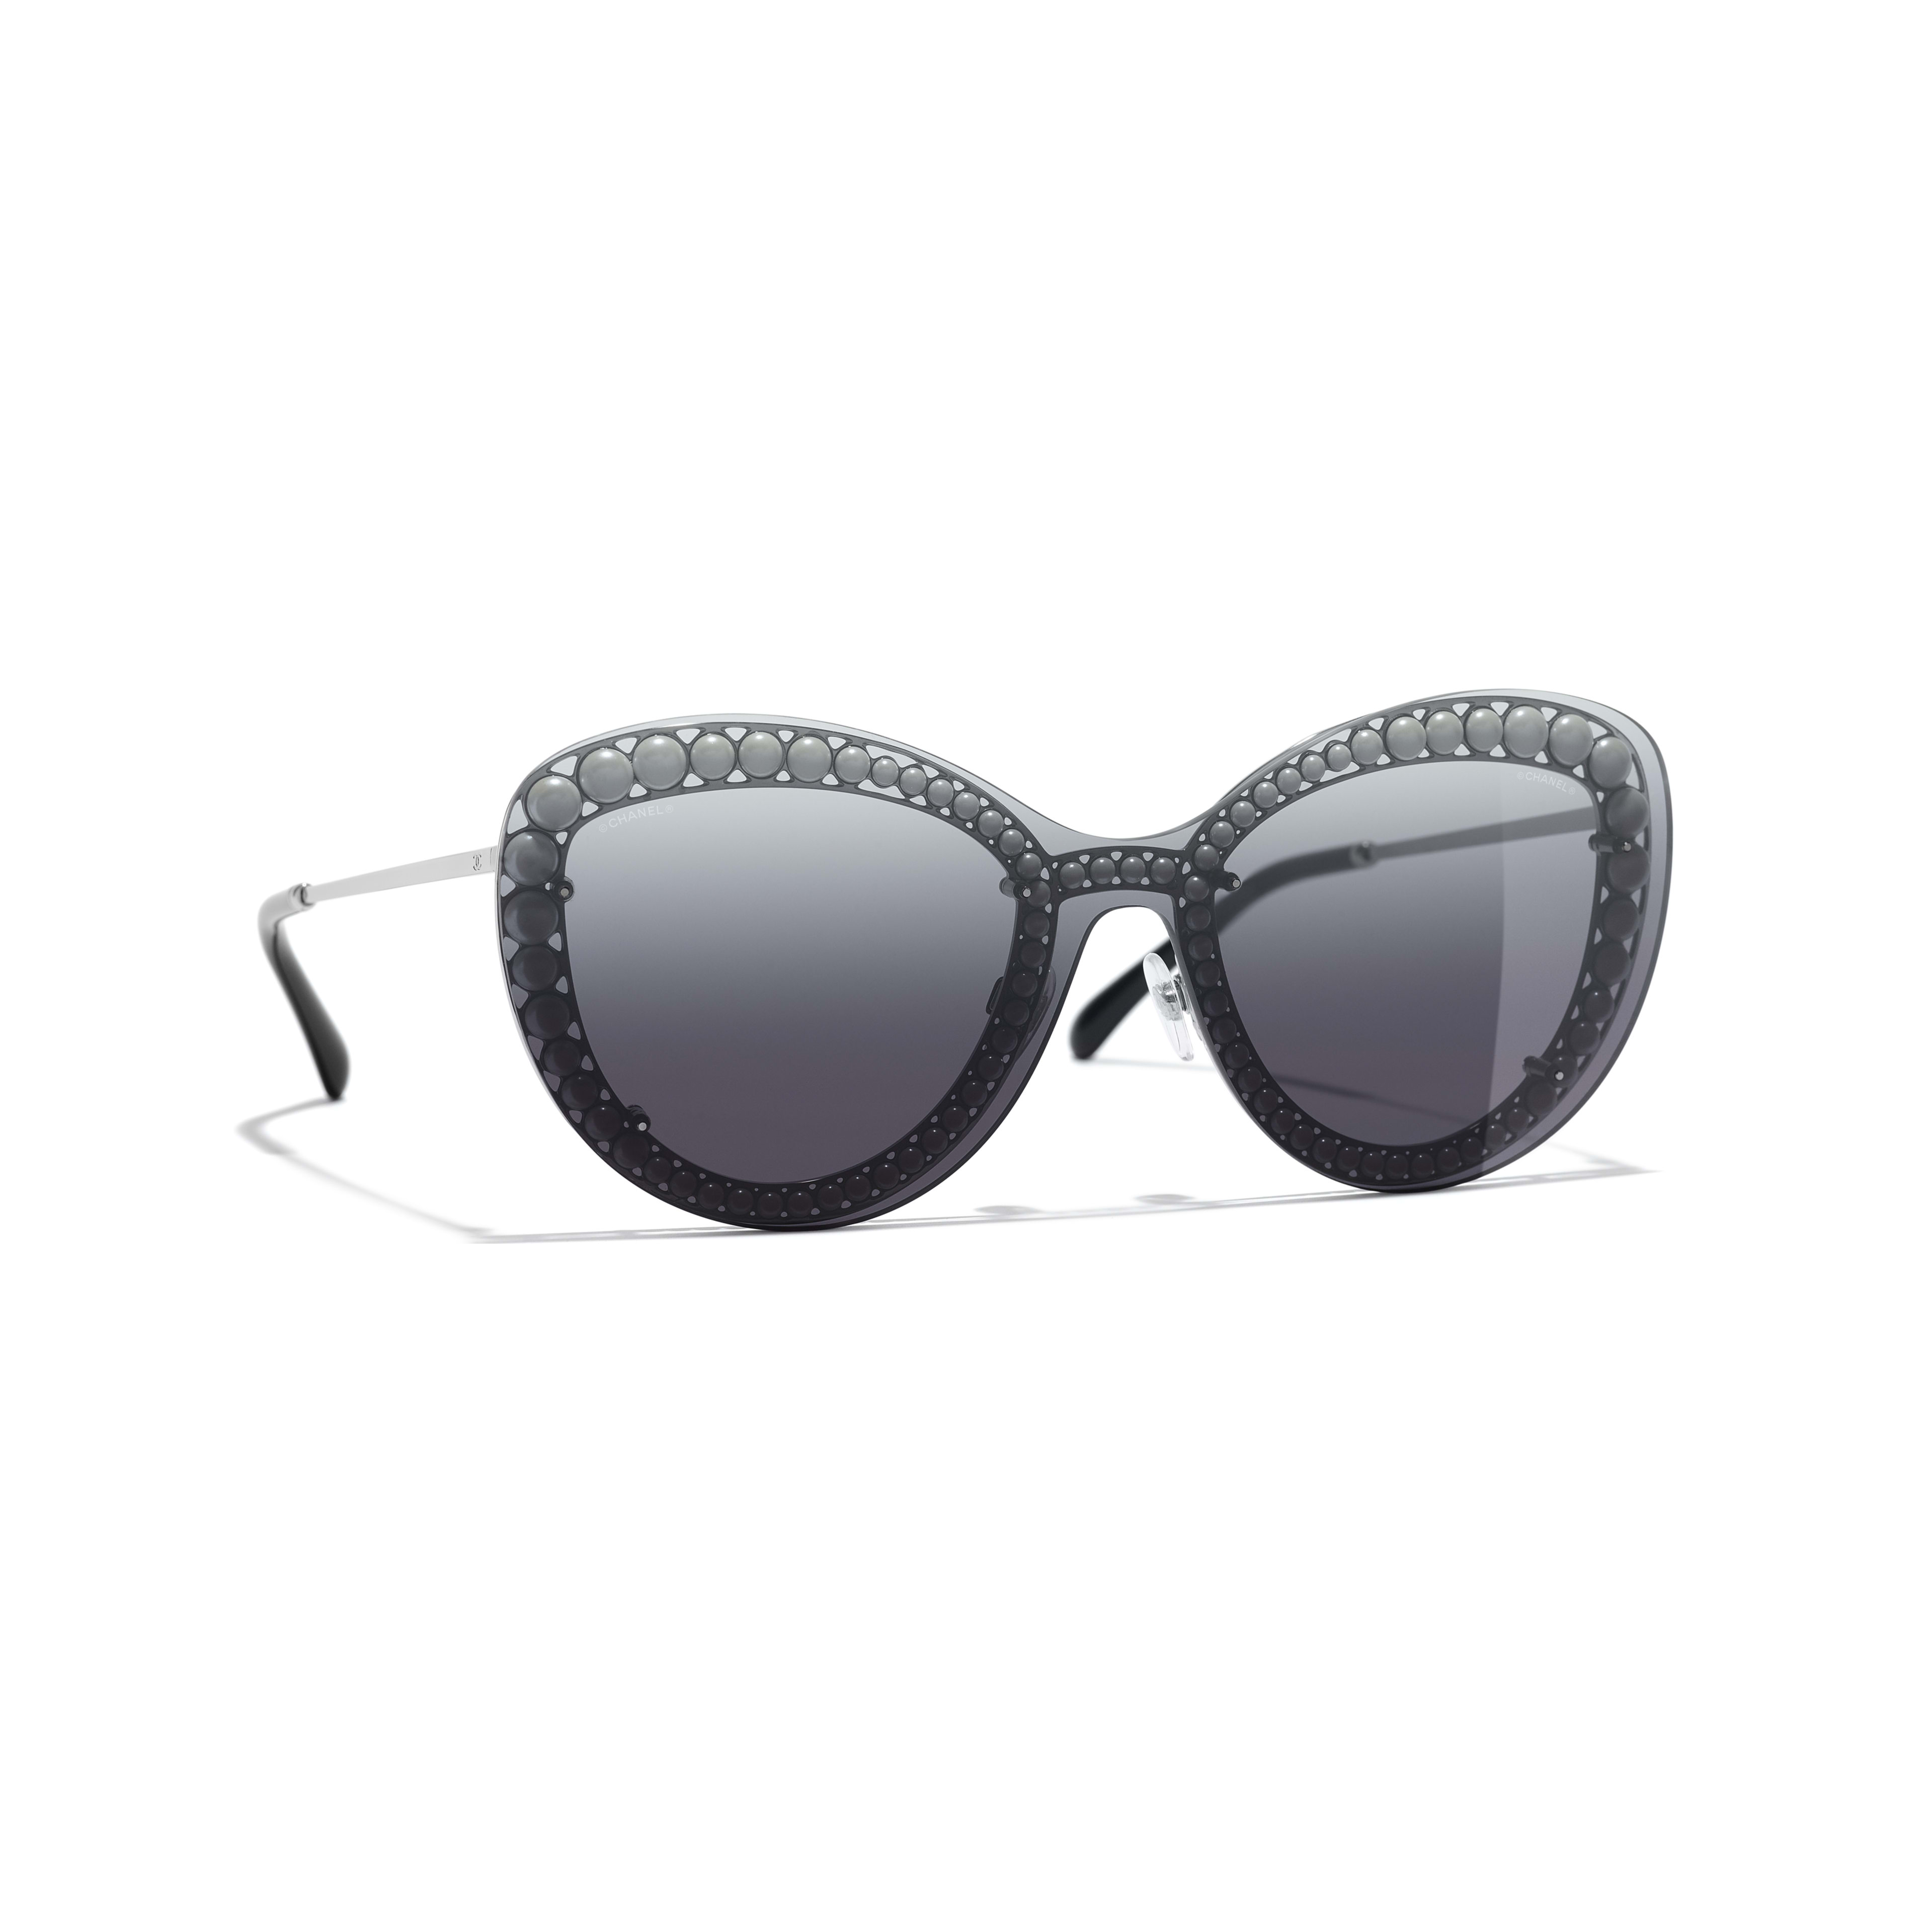 Butterfly Sunglasses - Silver - Metal & Imitation Pearls - Default view - see standard sized version